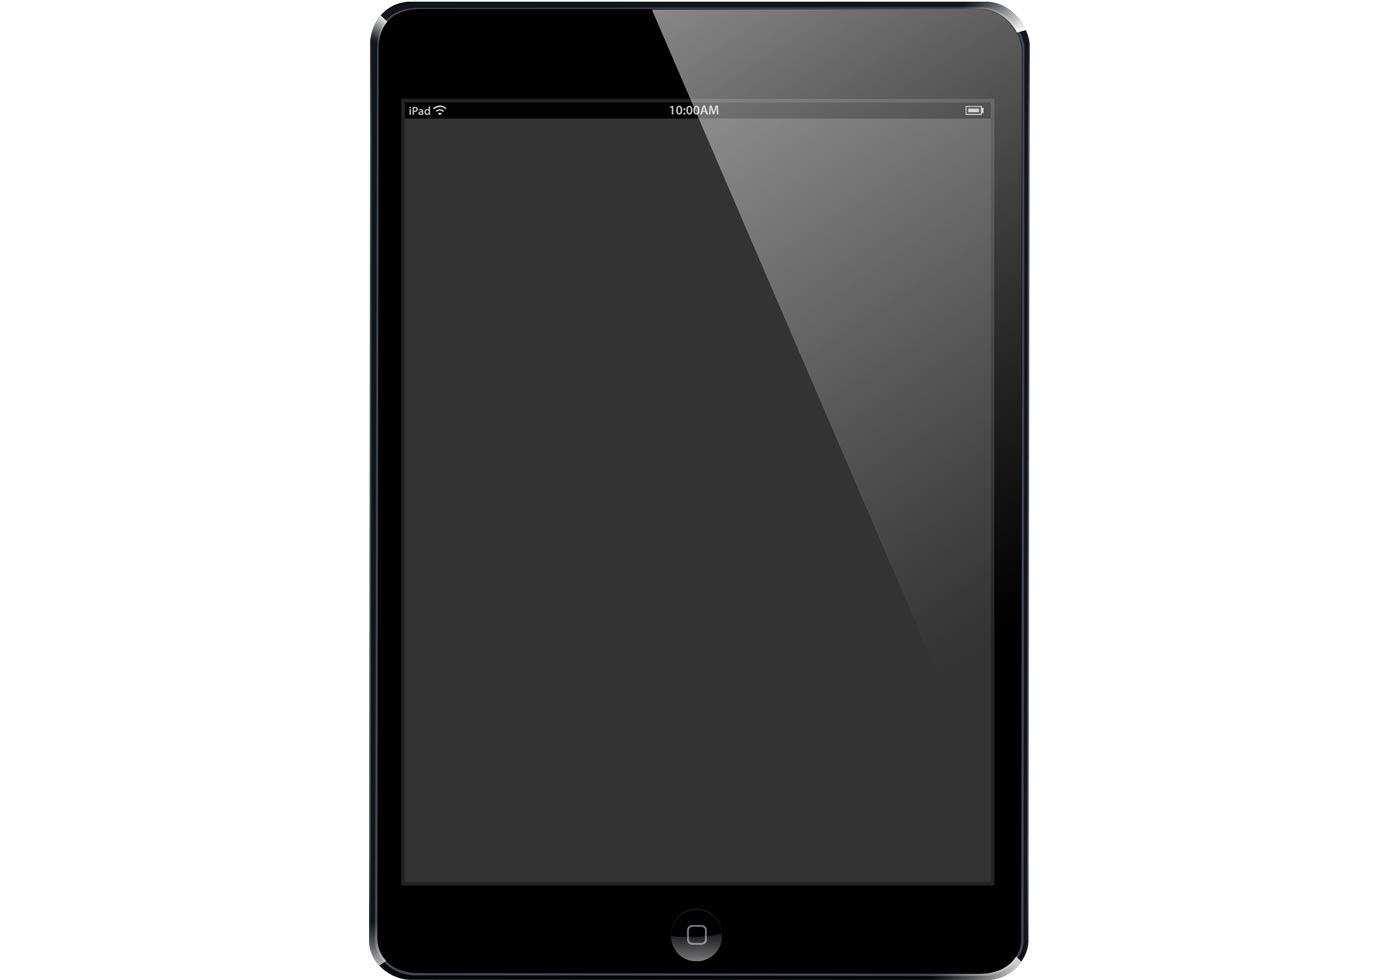 iPad Mini Vector | Free Vector Art at Vecteezy!